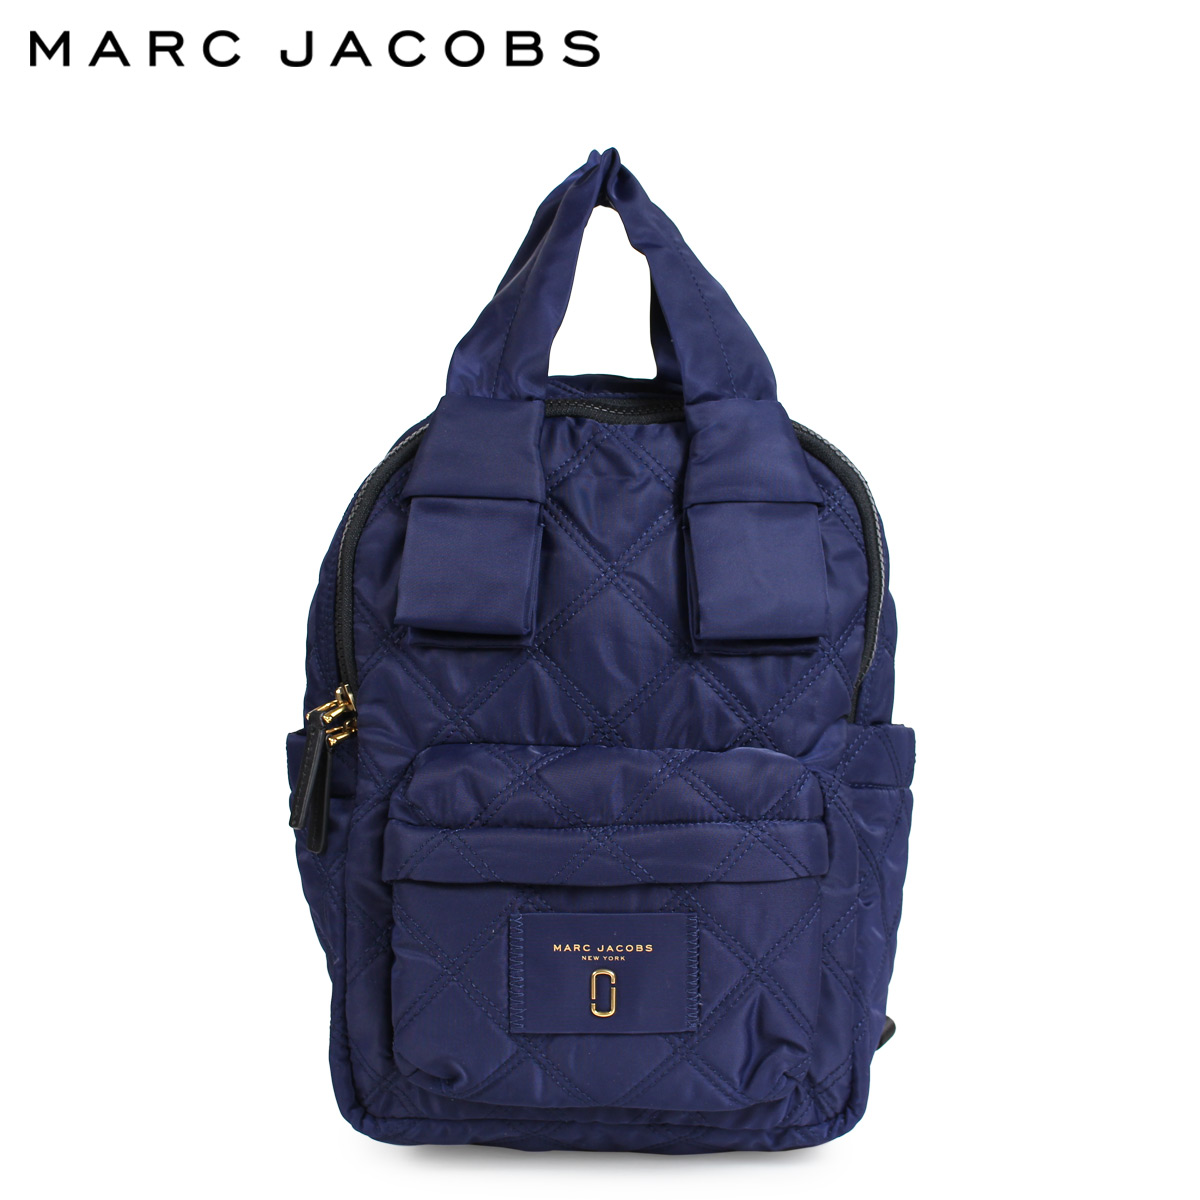 MARC JACOBS QUILTED NYLON SMALL BACKPACK マークジェイコブス リュック バッグ バックパック レディース ネイビー M0011201